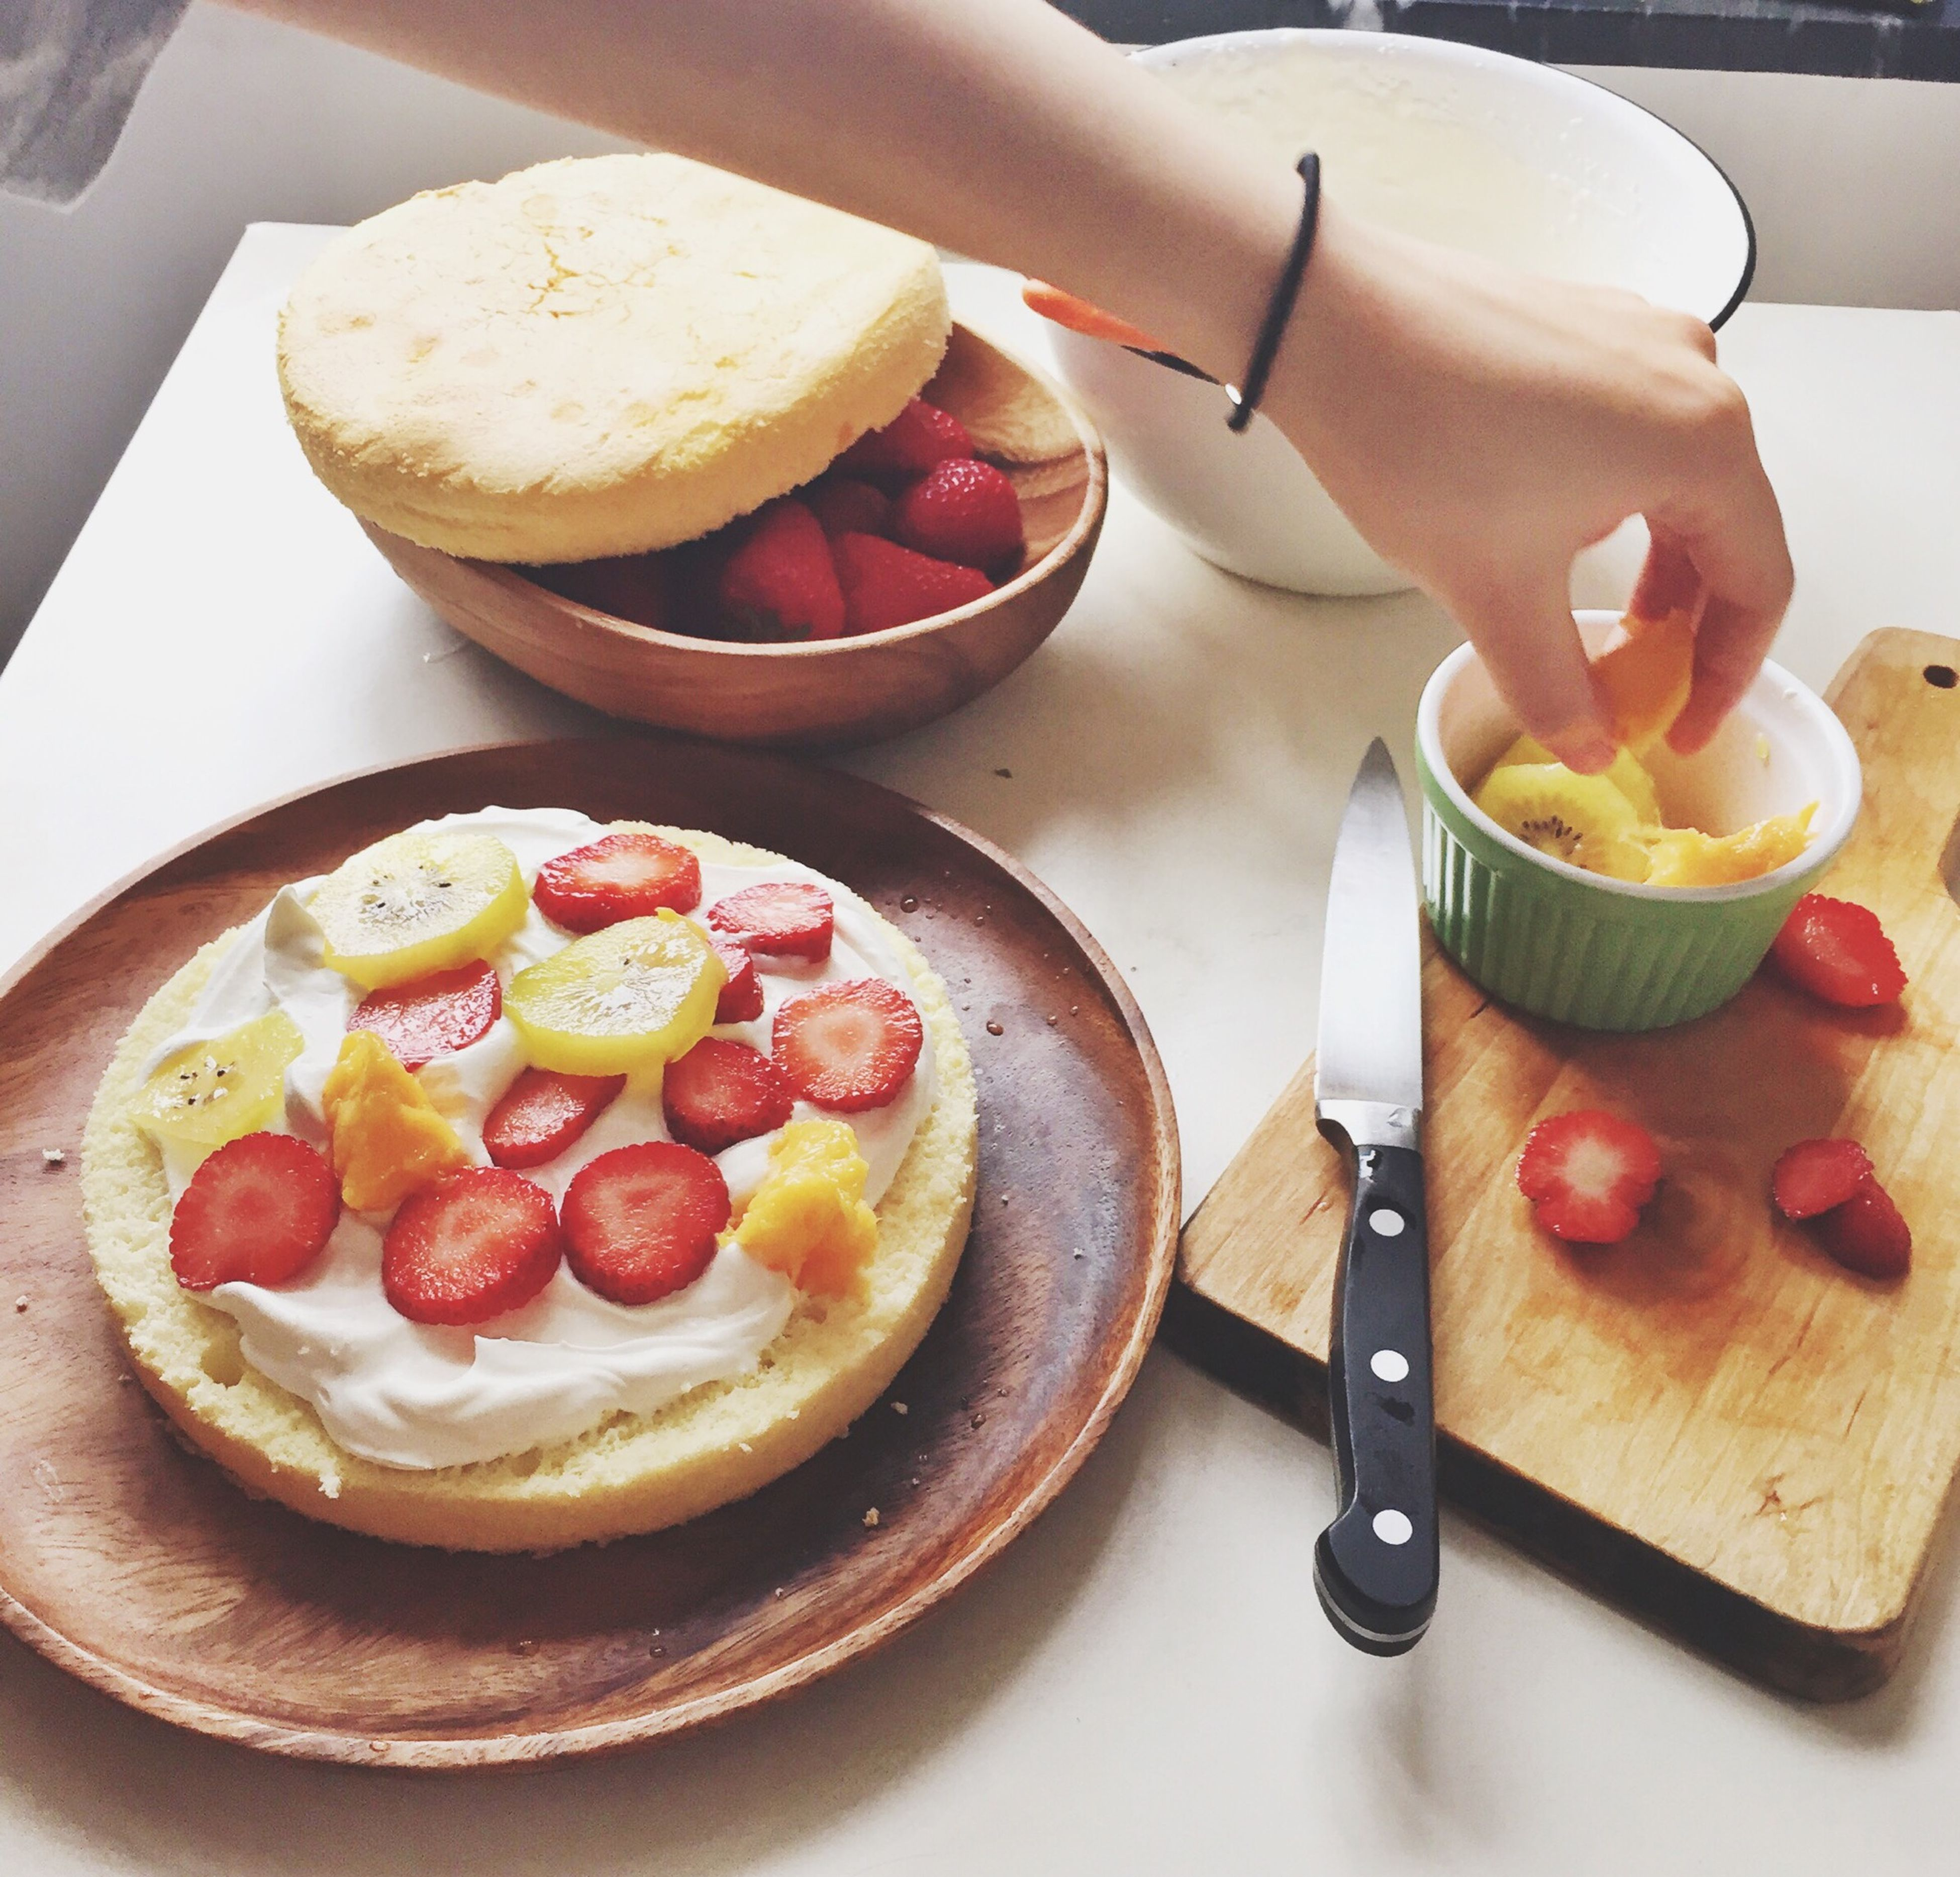 food and drink, food, freshness, ready-to-eat, indoors, sweet food, plate, indulgence, dessert, still life, unhealthy eating, strawberry, breakfast, fruit, serving size, temptation, cake, table, close-up, pancake